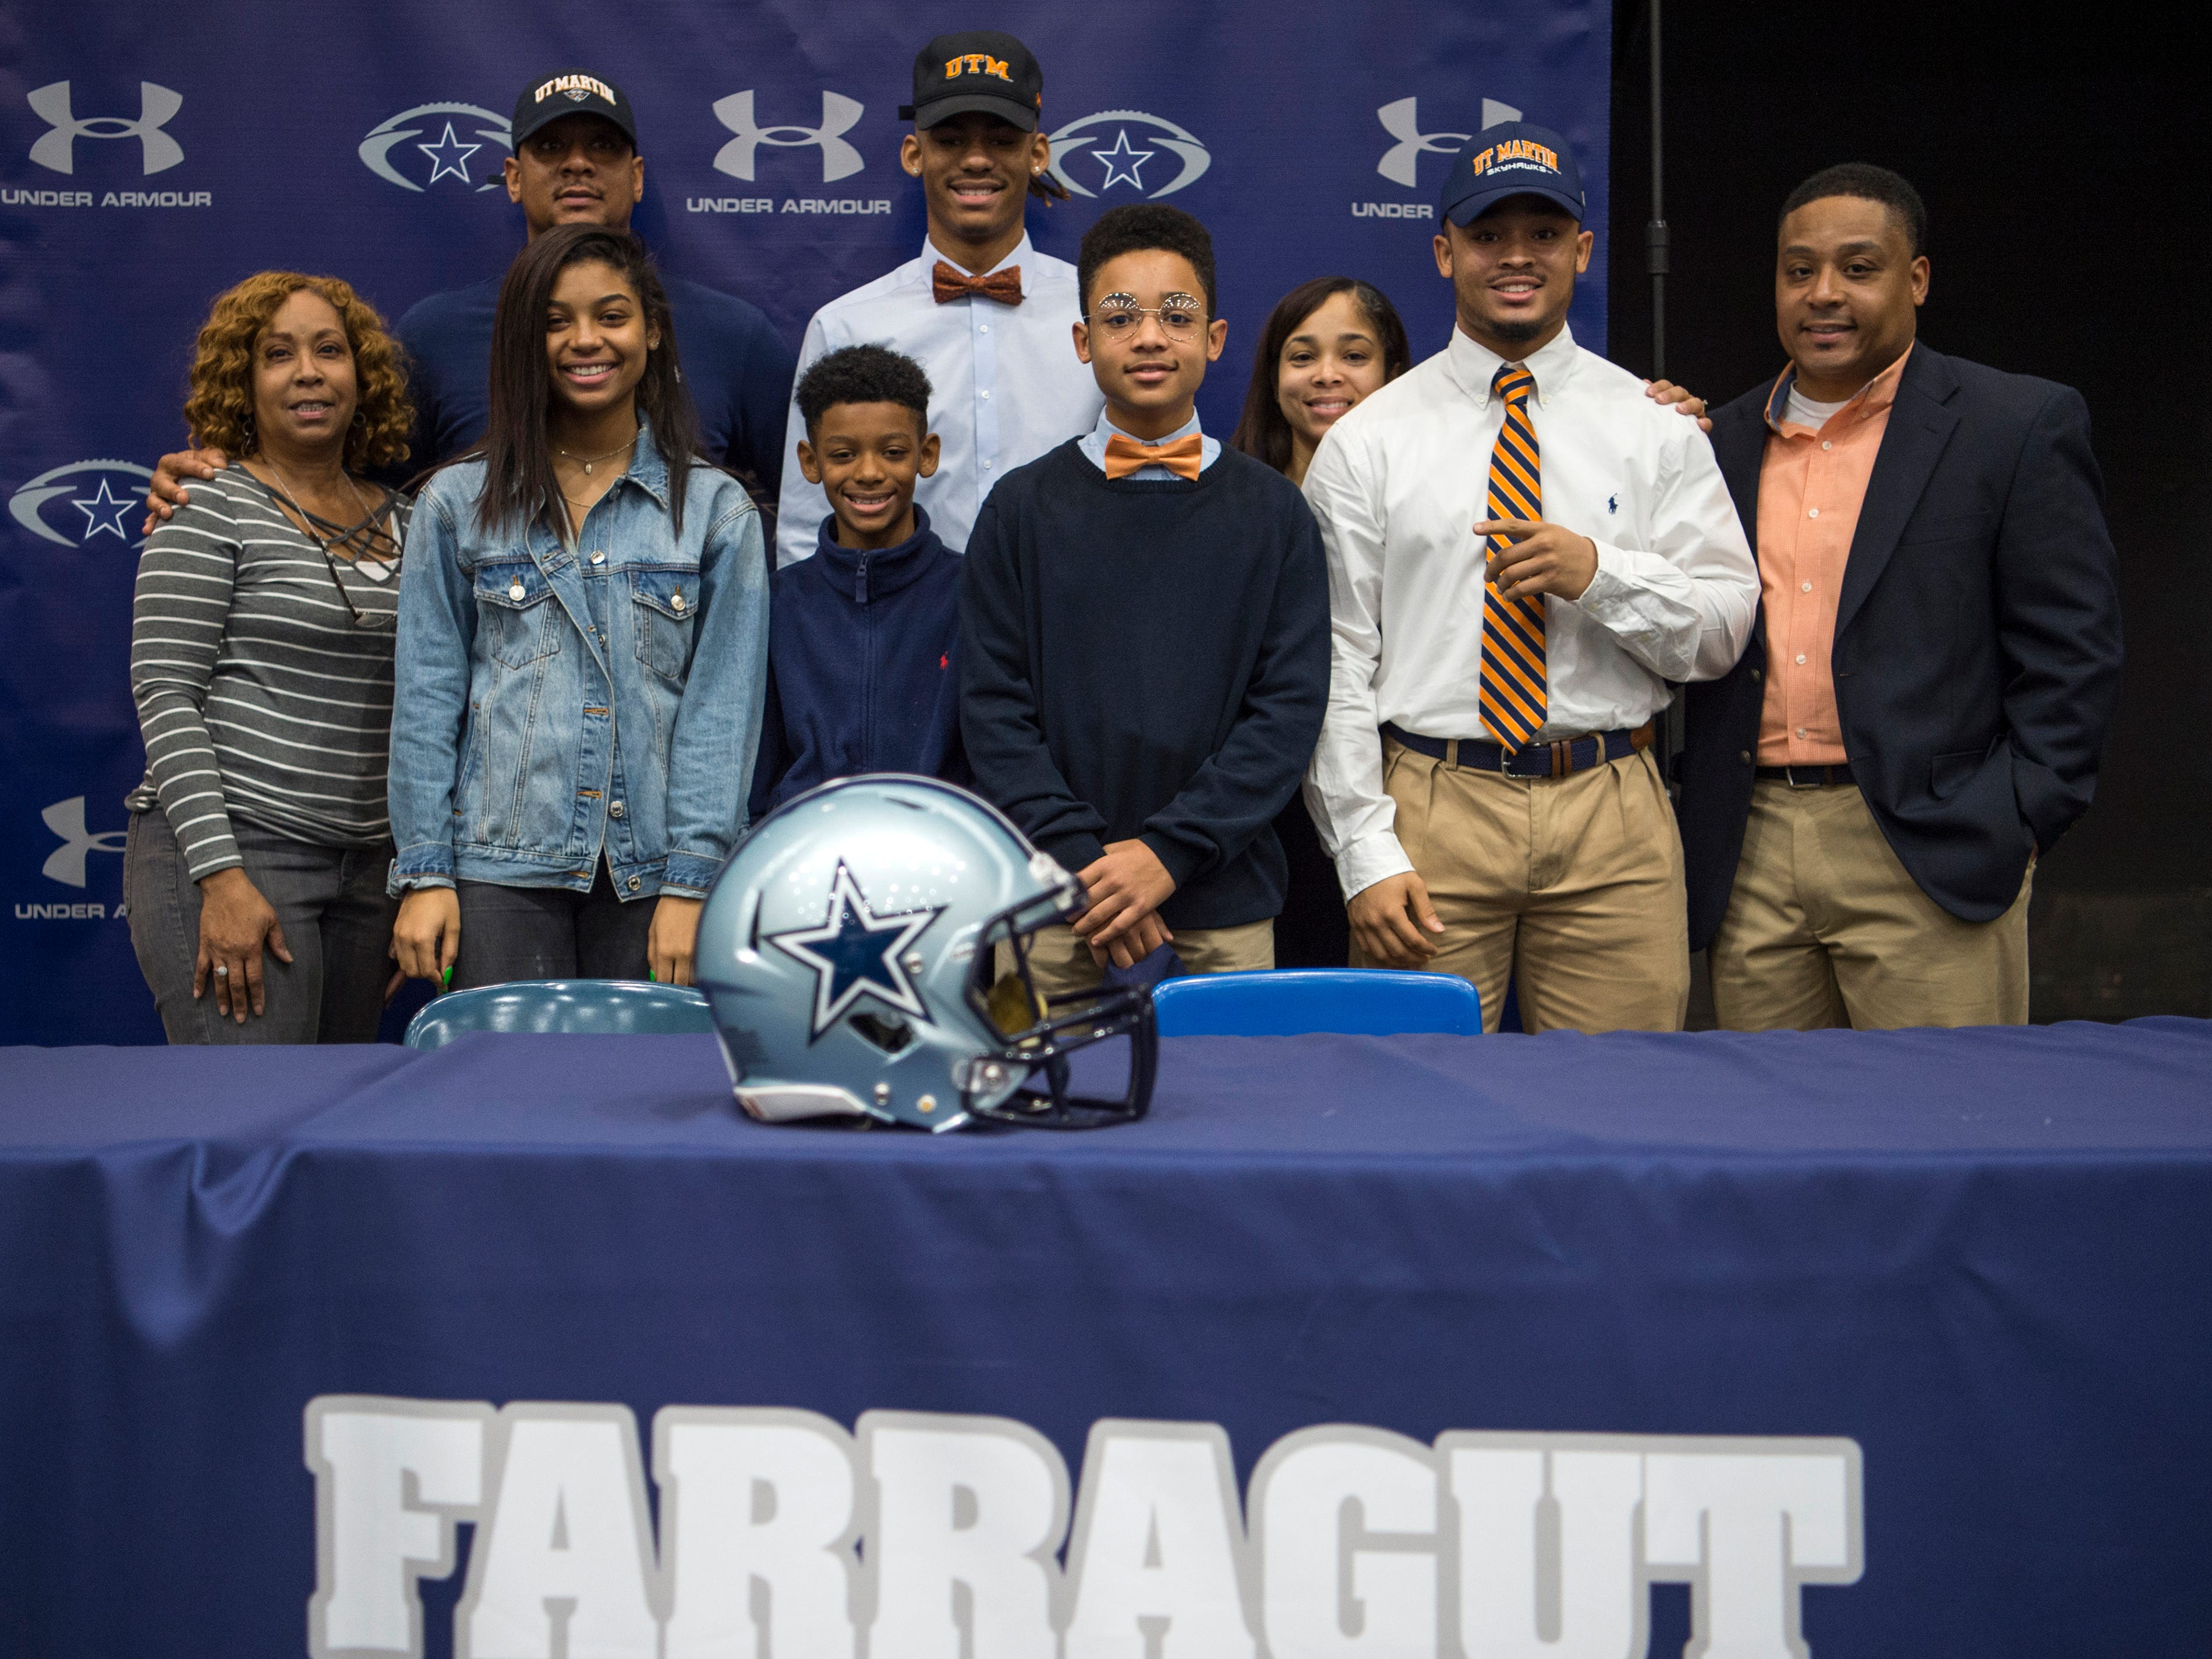 Farragut football players Isiah Gibbs and Jaden Gibbs during a National Signing Day event at Farragut High's auditorium on Wednesday, February 6, 2019.